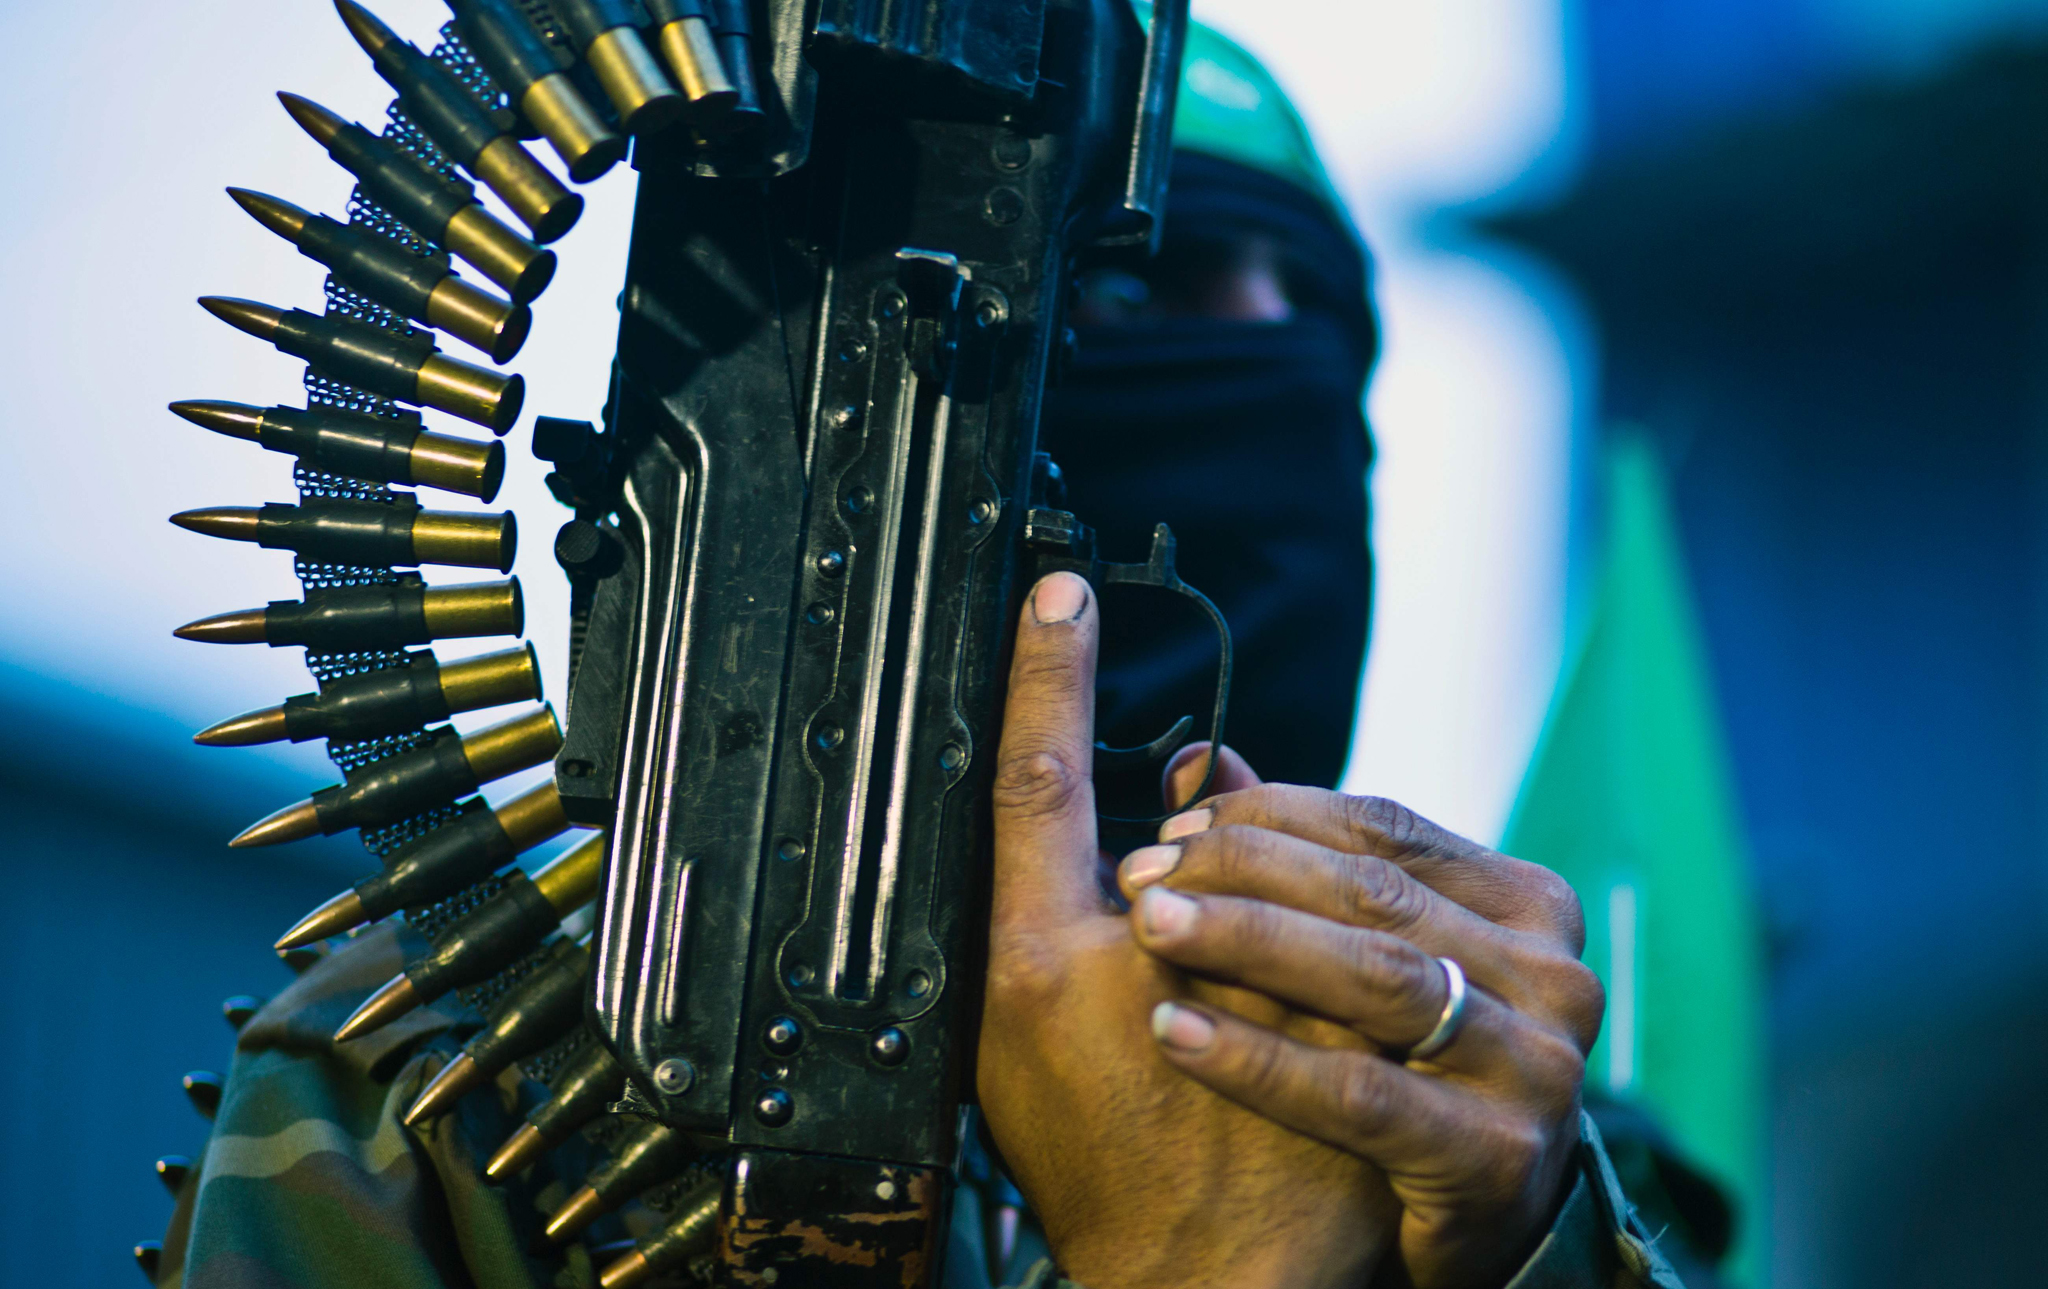 A member of the Ezzedine al-Qassam Briga...A member of the Ezzedine al-Qassam Brigades, the military wing of the Palestinian Islamist movement Hamas holds his weapon during a rally to mark the 12th anniversary of the death of assassinated Hamas spiritual leader Sheikh Ahmed Yassine on March 23, 2016 outside his home in Gaza city.  / AFP PHOTO / MAHMUD HAMSMAHMUD HAMS/AFP/Getty Images